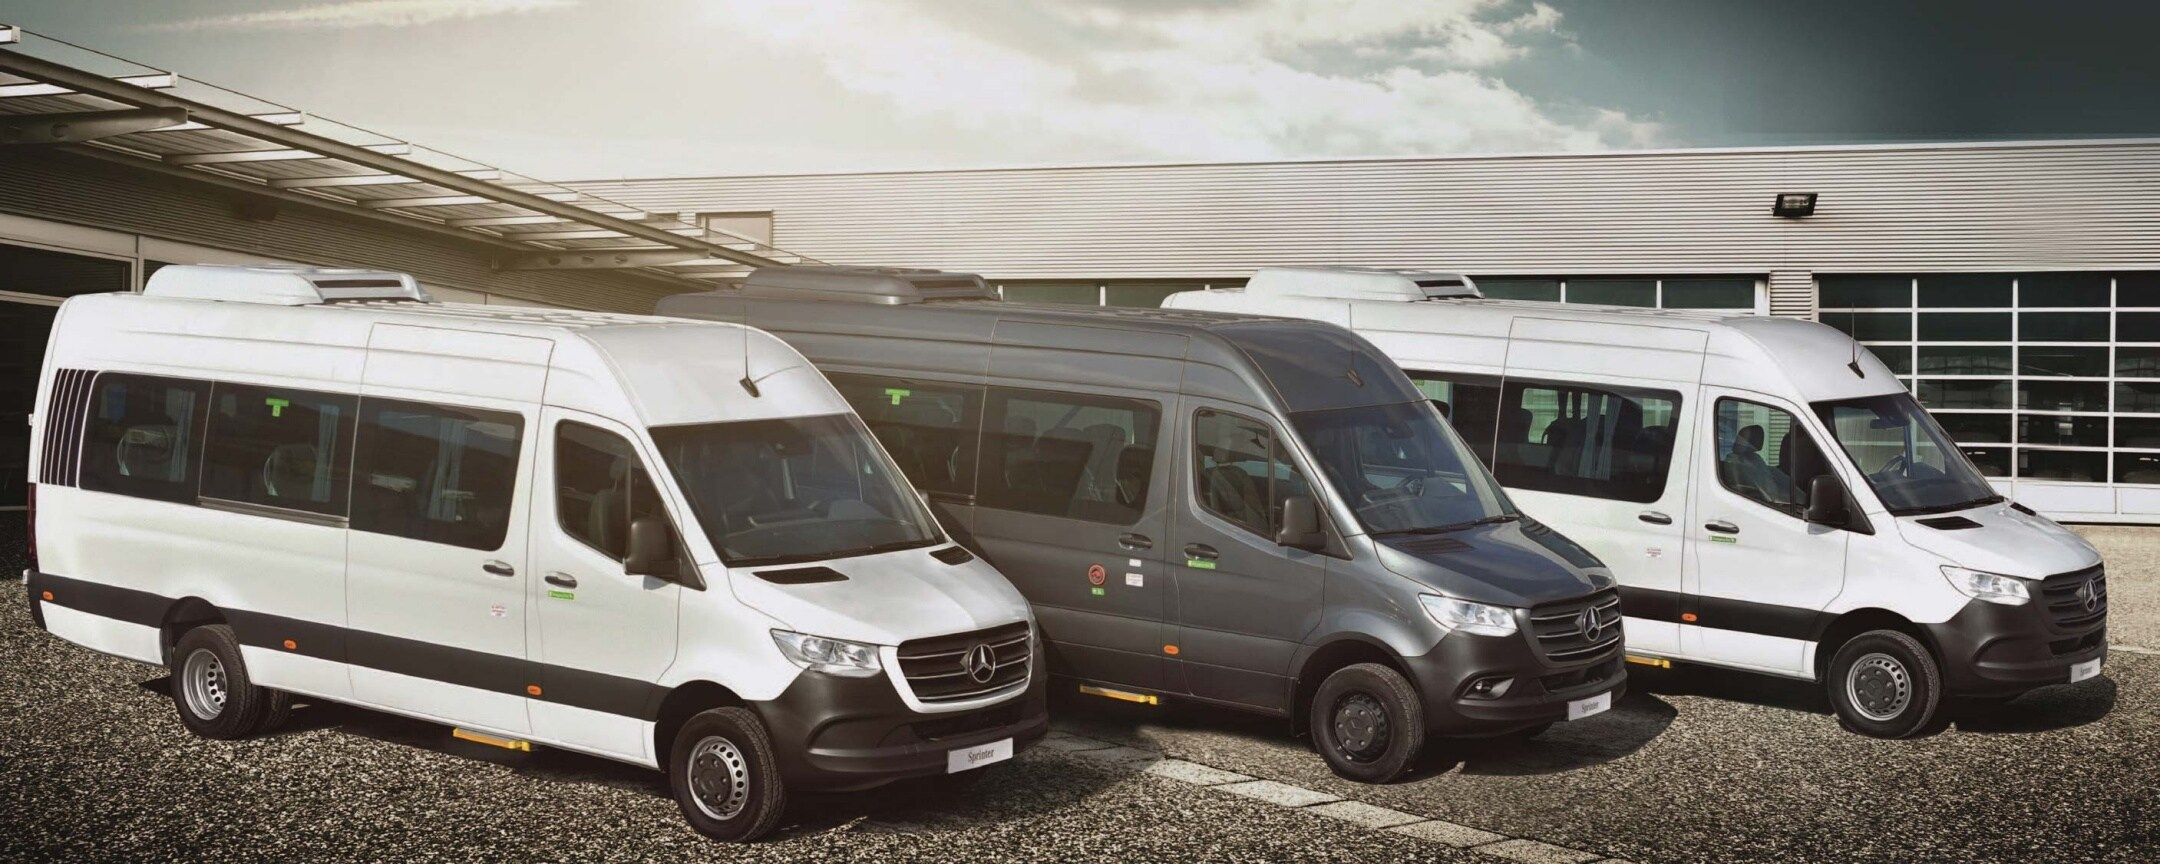 Exemplary Solutions: the new Sprinter.